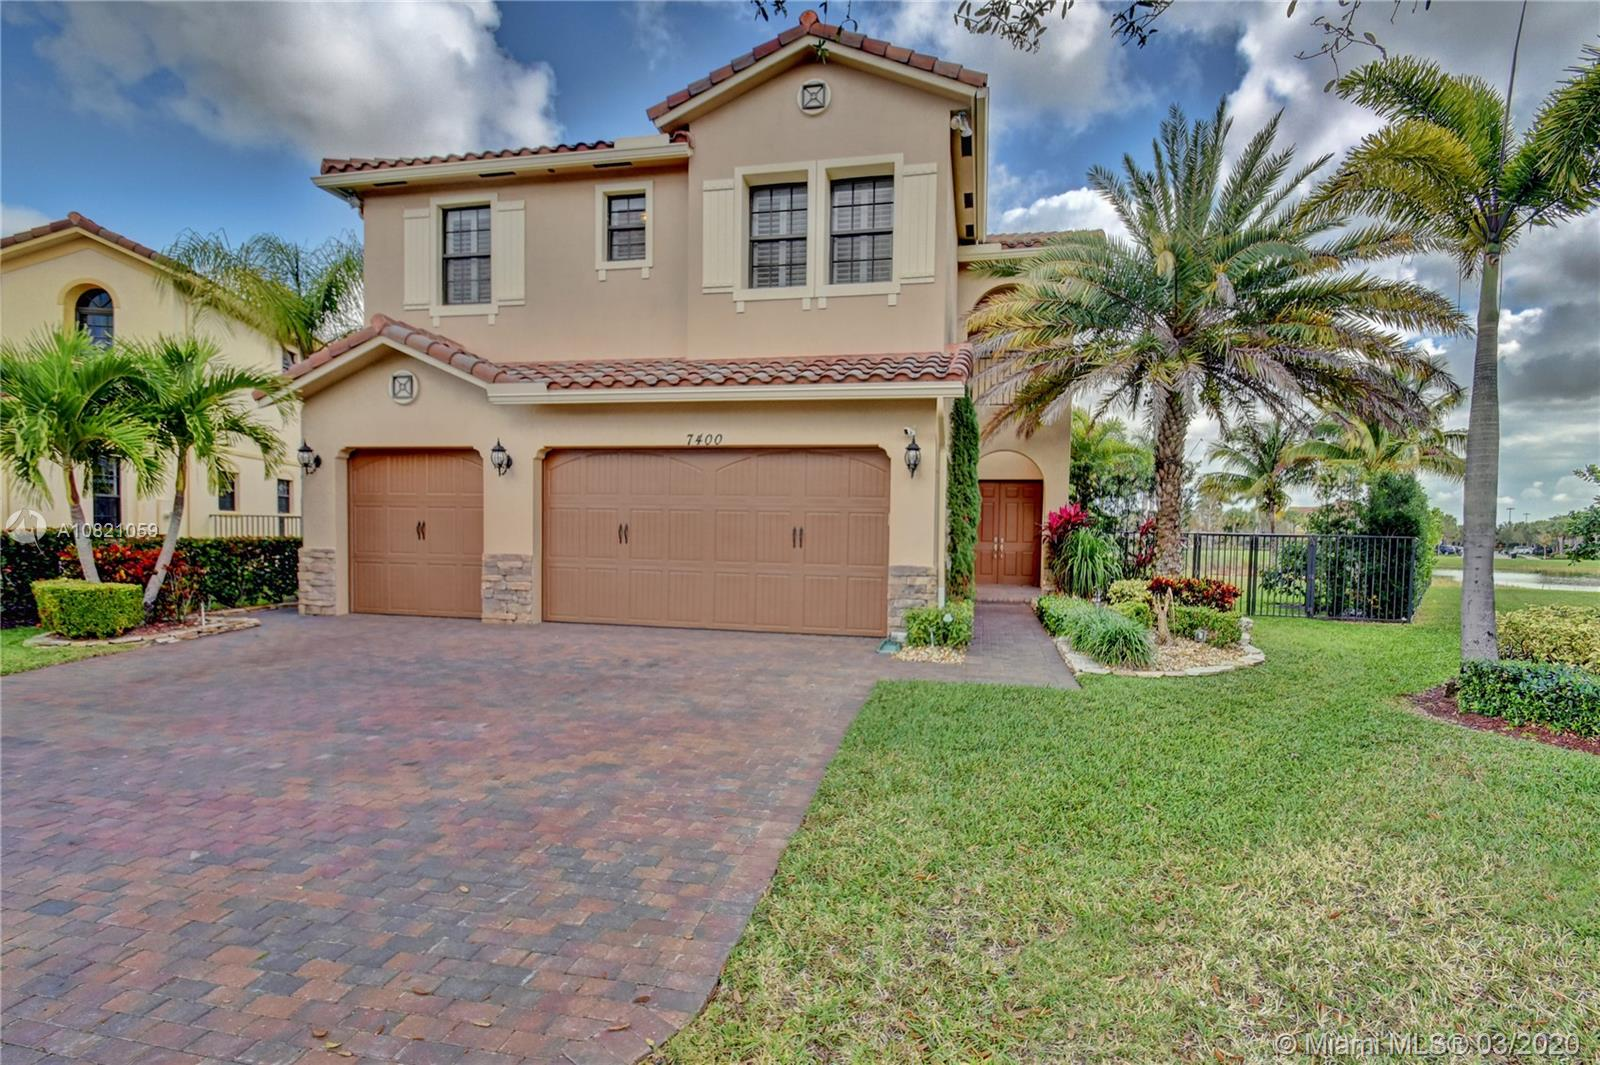 Come and live the Parkland lifestyle in this beautiful 5 bedroom 4 bath home.  The home is on a large cul-de-sac, lake front lot, with gorgeous views. The home features open living areas down stairs with tile throughout.  The large kitchen has stainless steel appliances. The master bedroom has an expansive walk in closet with built ins. The upstairs has wood floors. The travertine patio is large enough to host any bar b que and your guests will love the view. There is also a summer kitchen and a heated pool. The garage has professionally done epoxy on the floor and gladiator shelving that stays. Dual zone ac, one unit is a year old. This beautiful neighborhood has a low HOA of 165 per month.  An offer to rent has been accepted.  Property will have a tenant June 1.